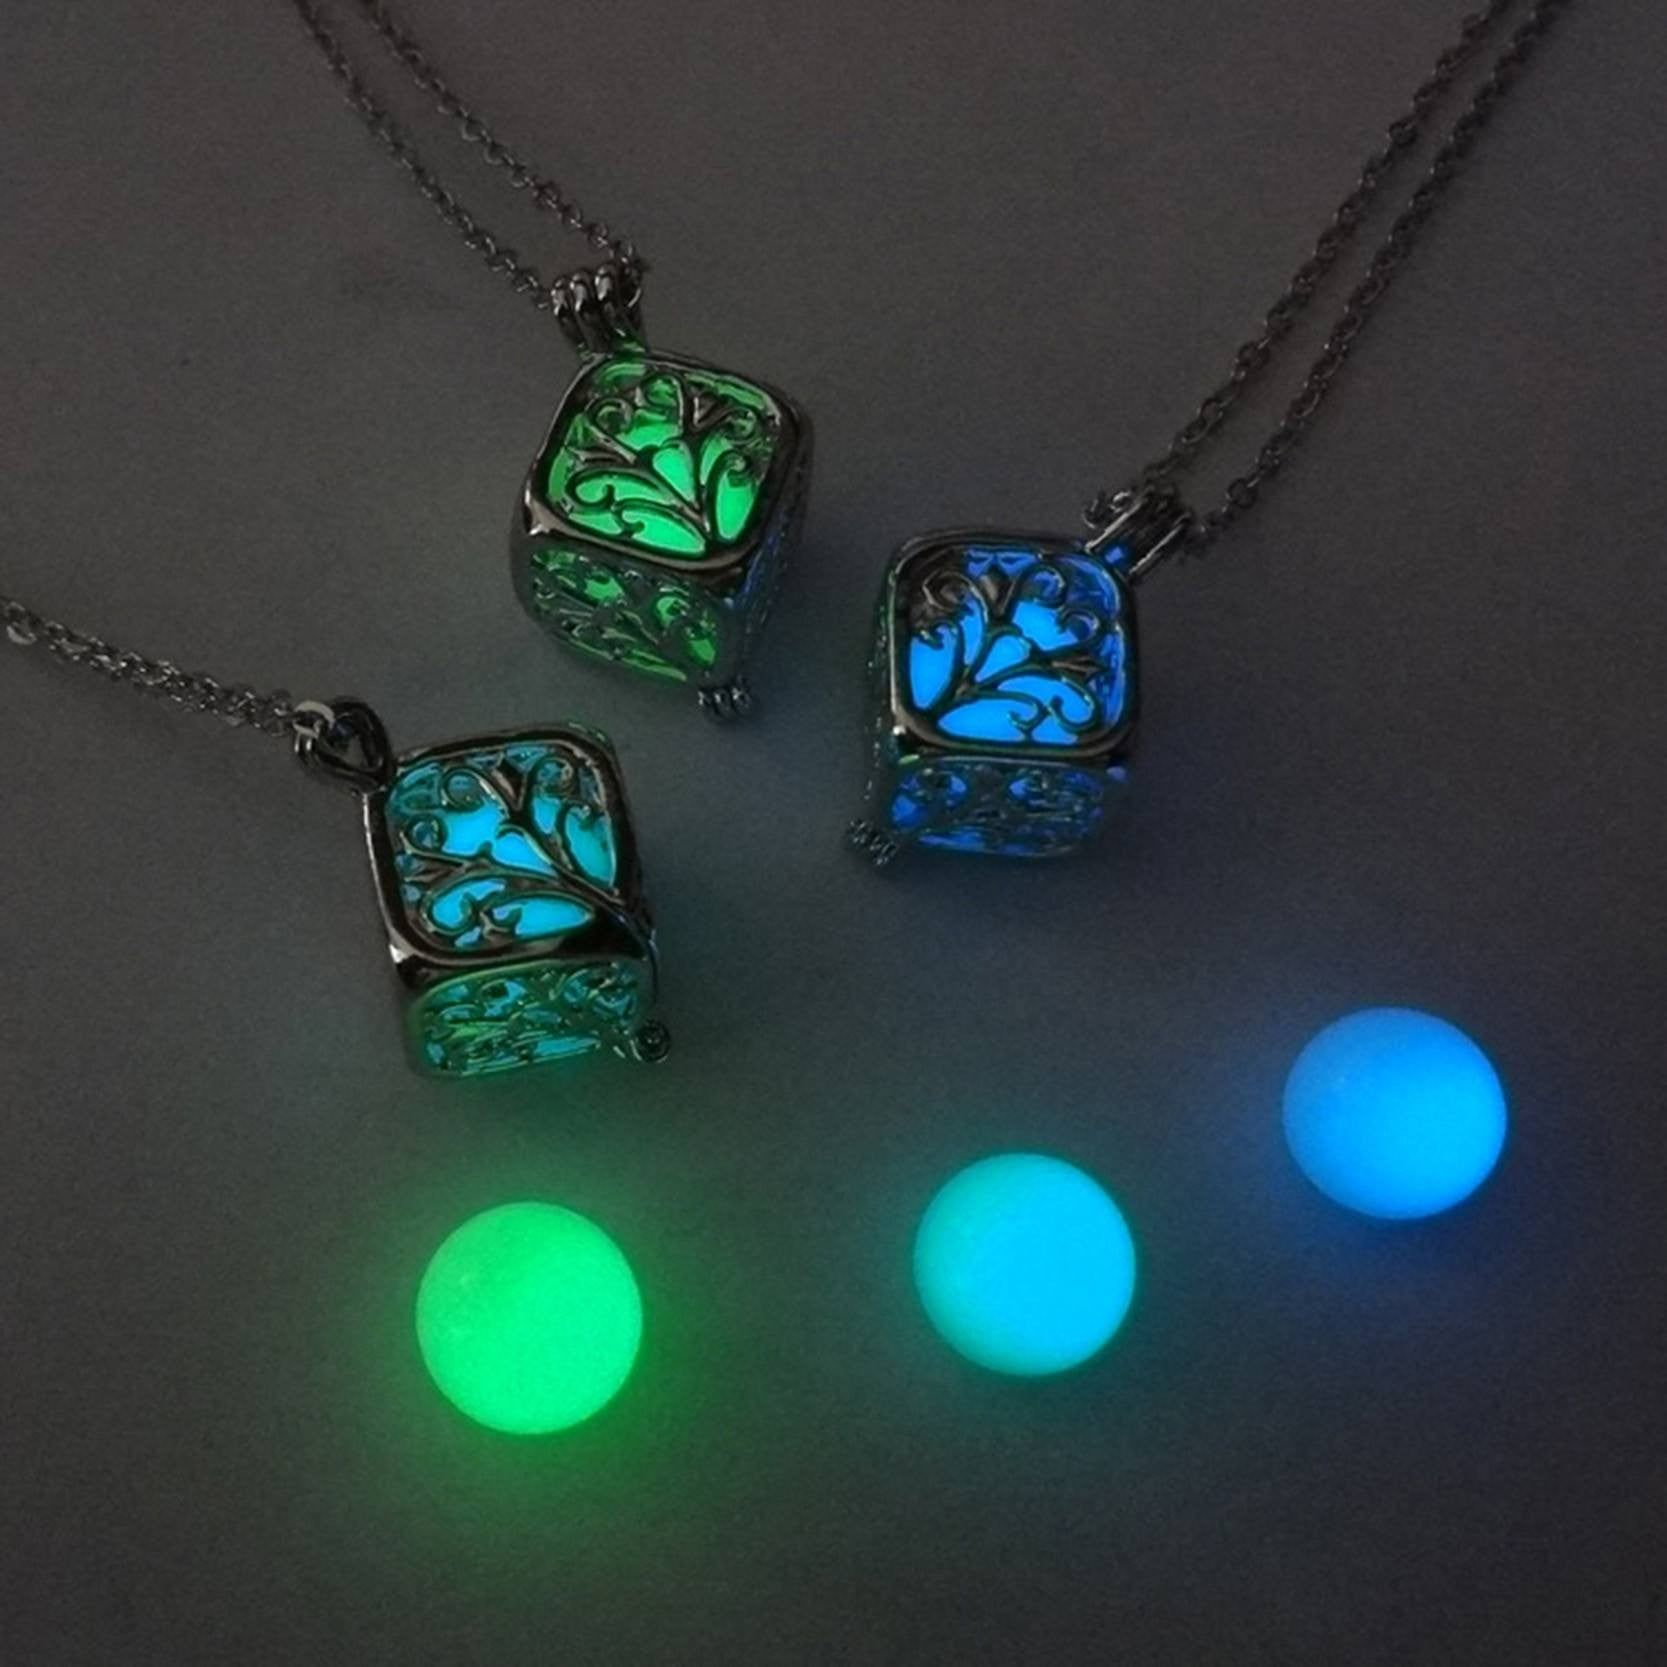 glowing charm affordable pk casual buy wear necklace women large in jewelry item turquoise others womens jewellery pakistan moon